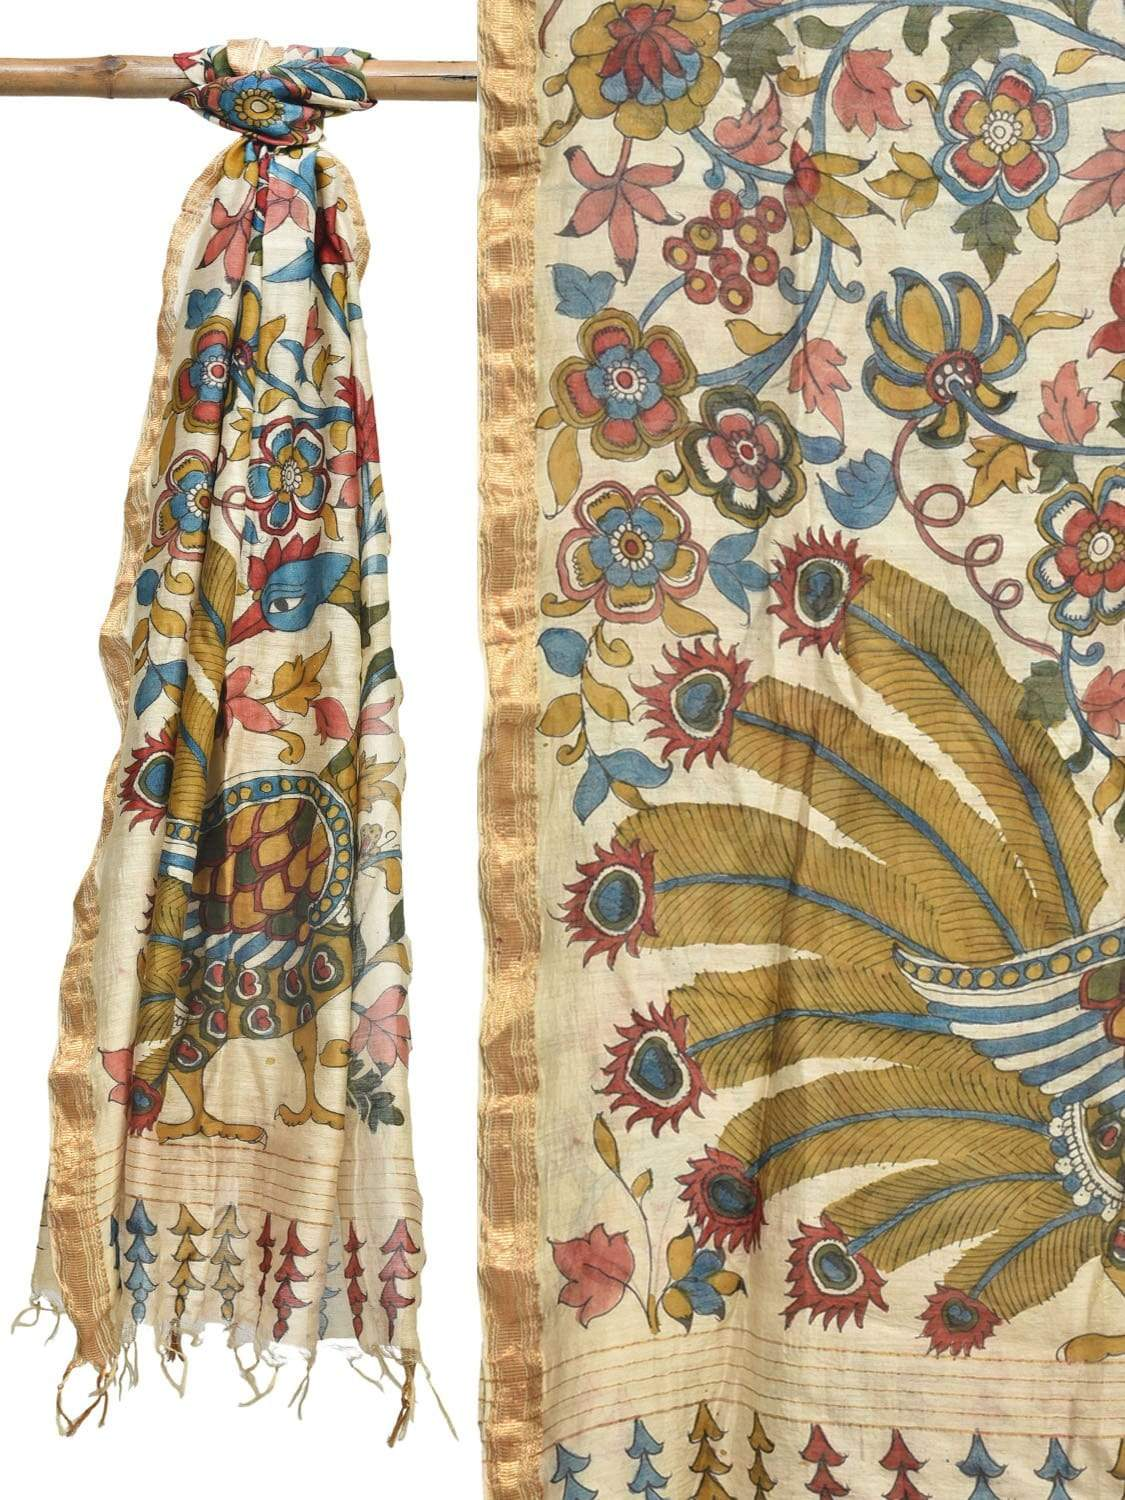 Cream Kalamkari Hand Painted Cotton Silk Handloom Dupatta with Flowers and Peacock Design ds1932